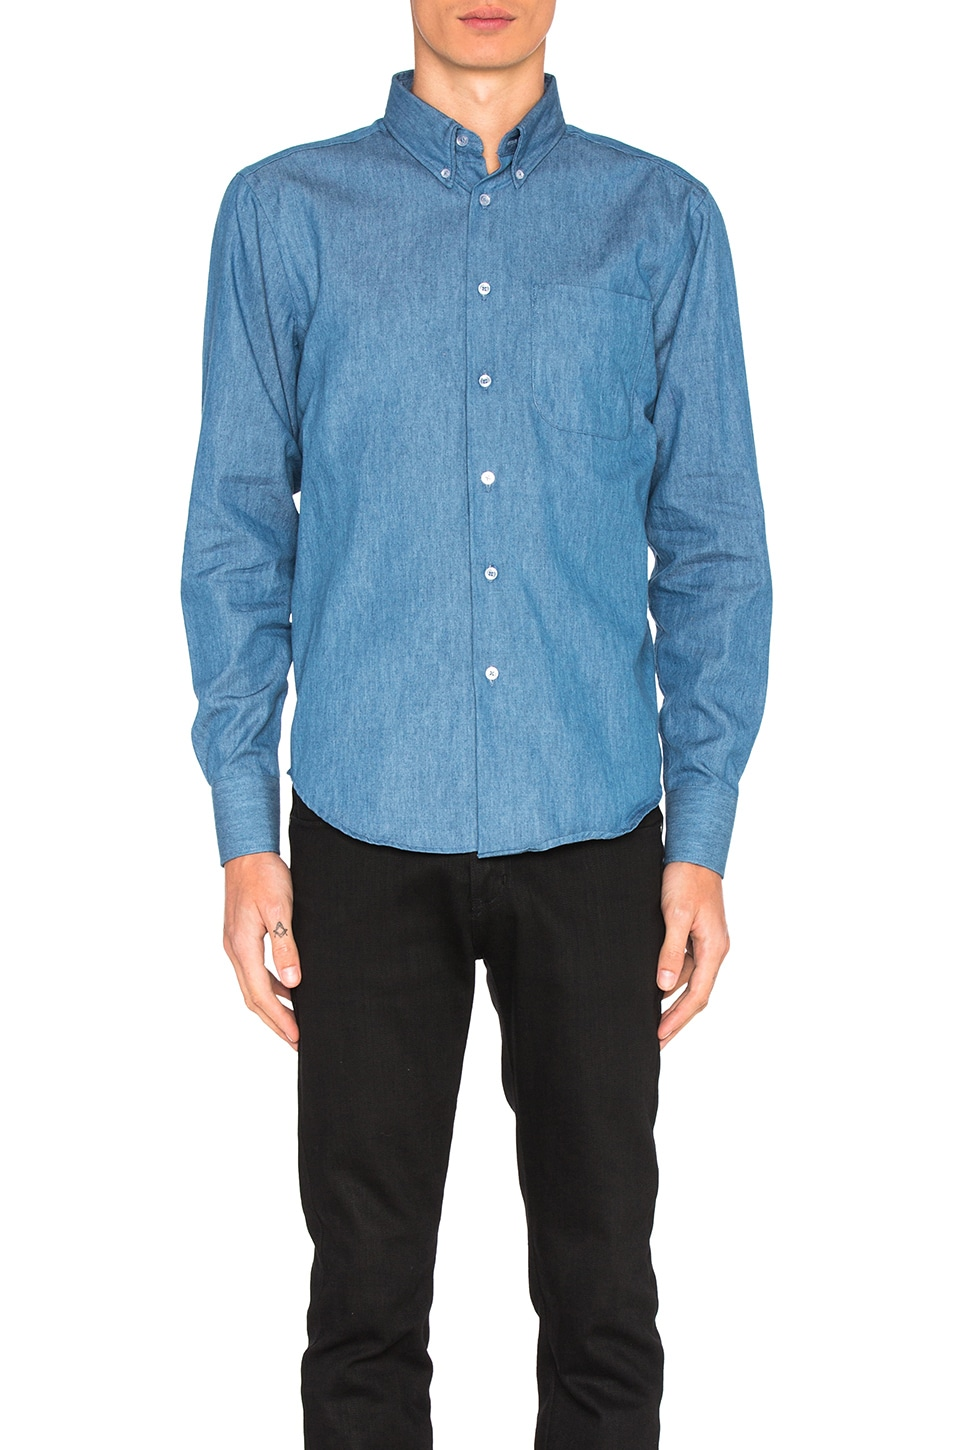 Regular Button Down by Naked & Famous Denim